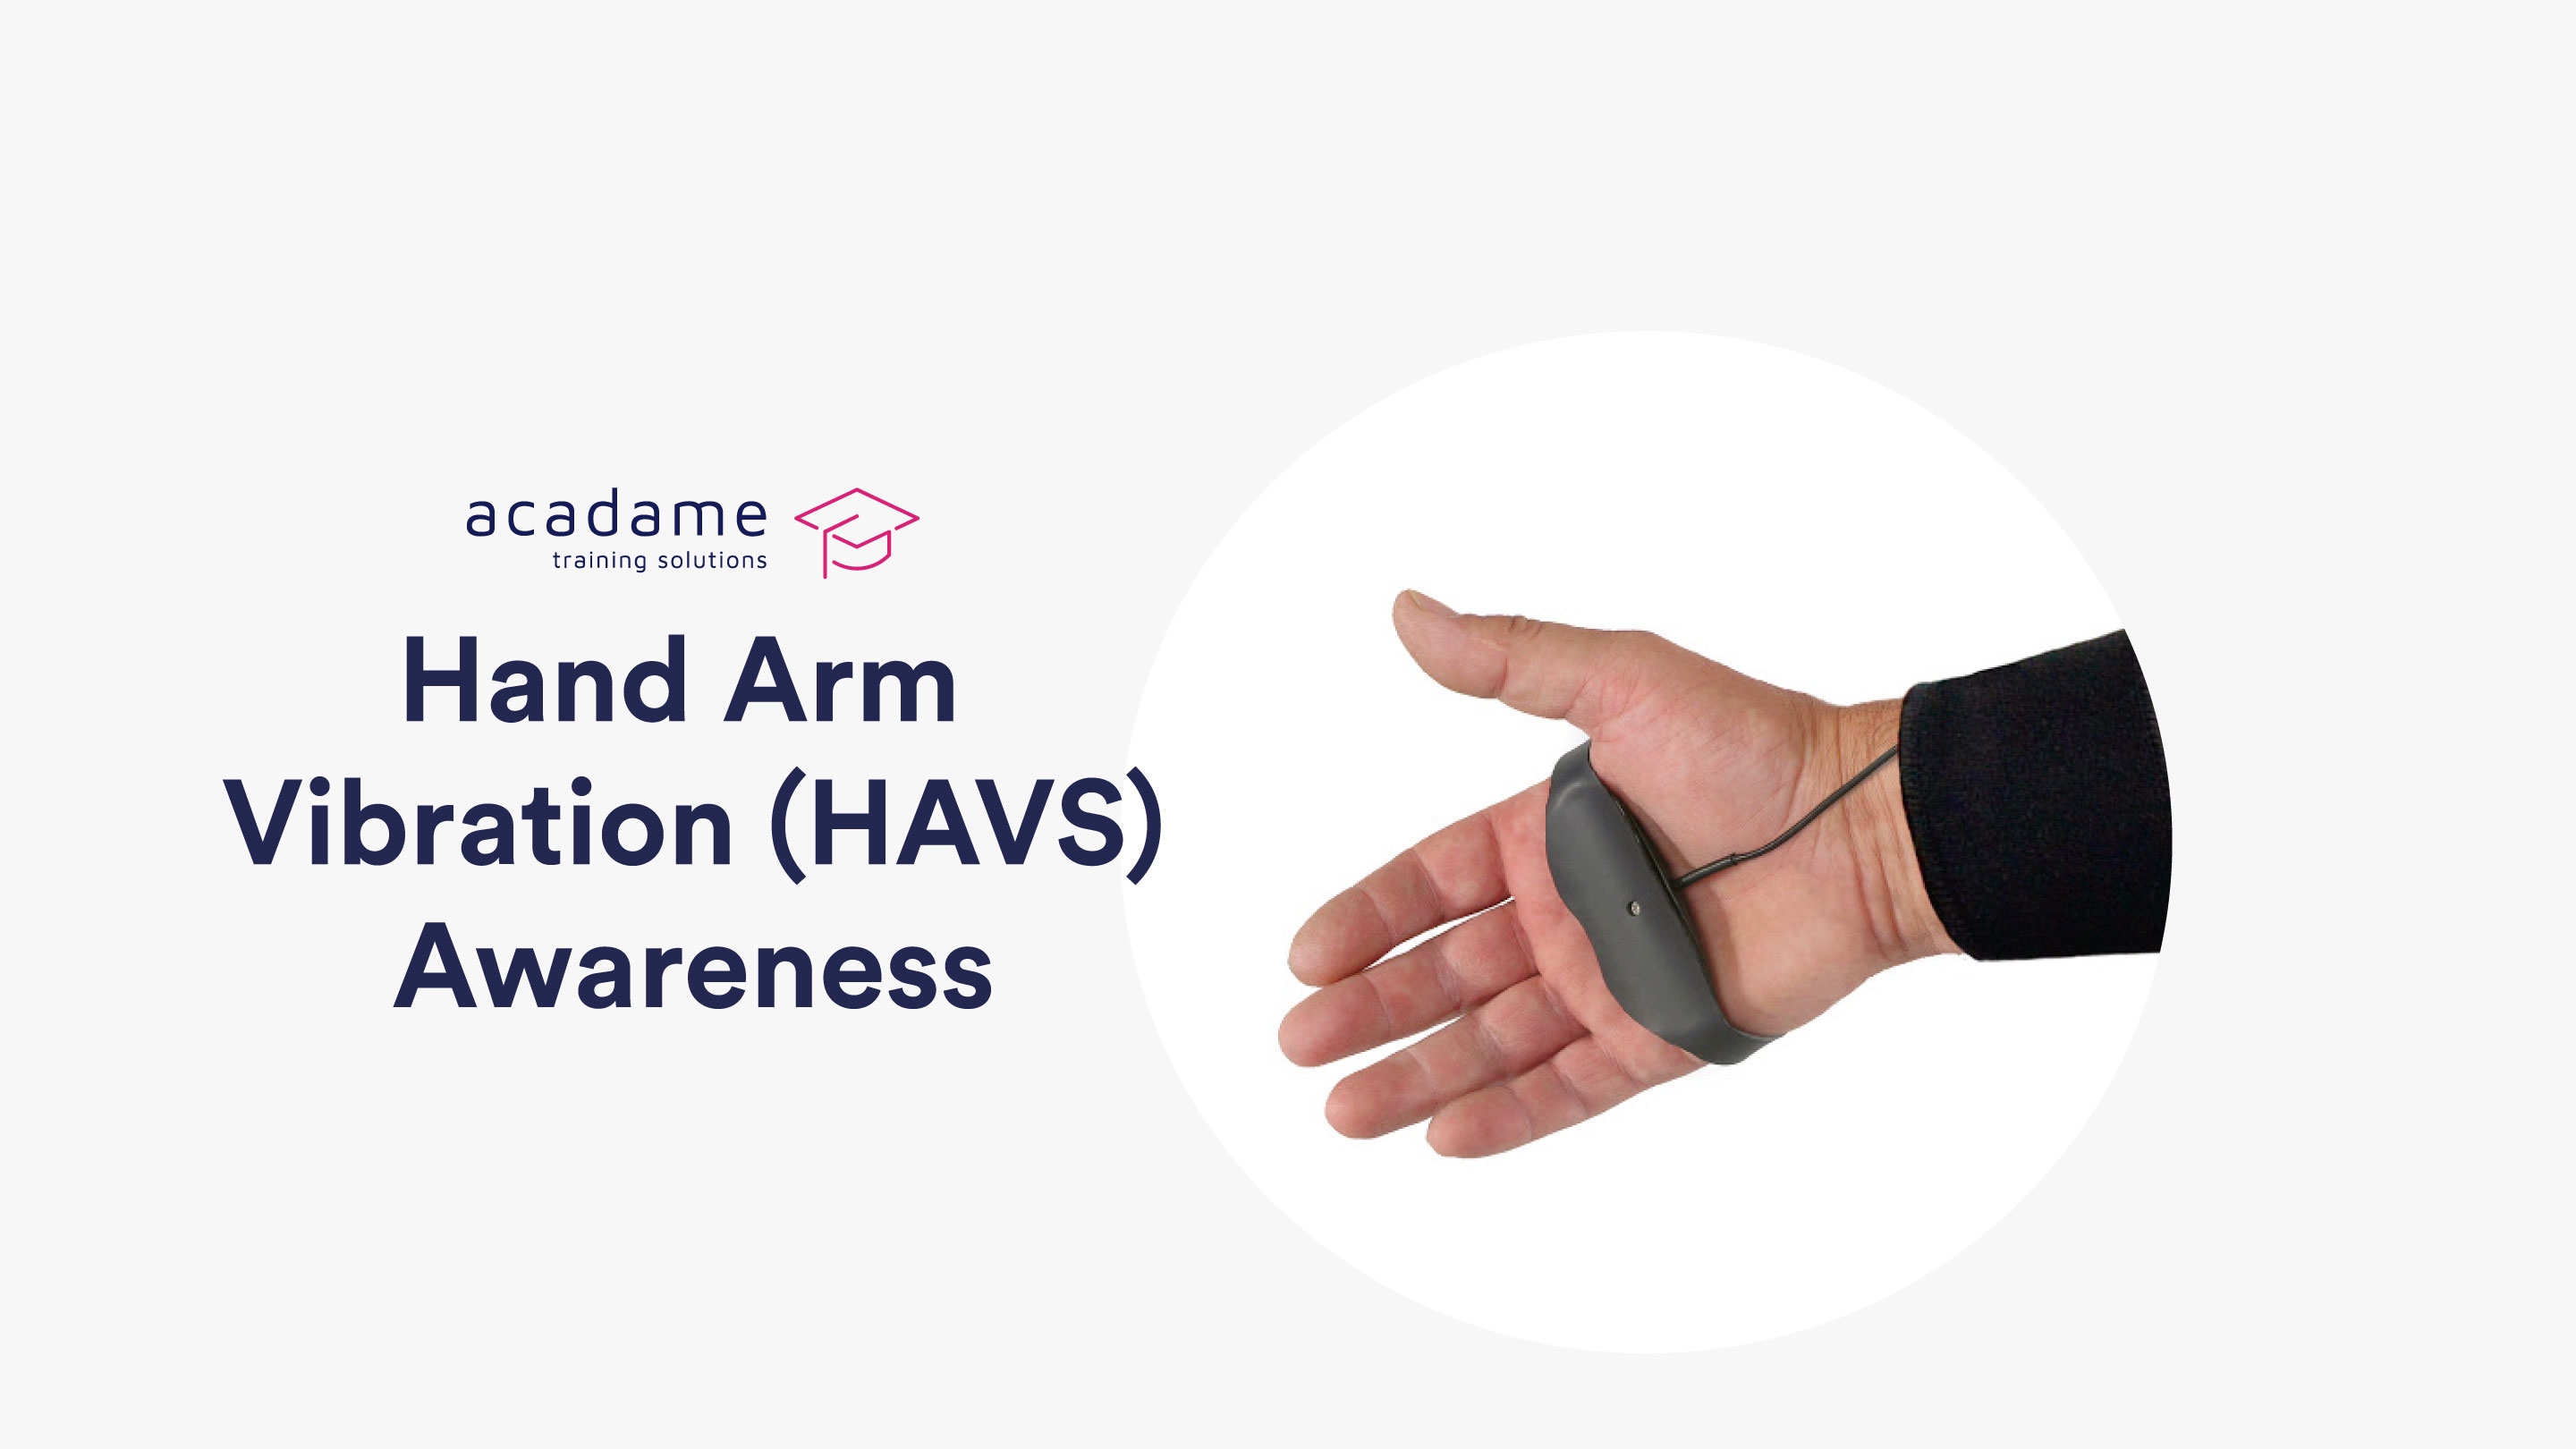 hand_arm_vibration_havs_training_course_in_stoke_on_trent.jpg